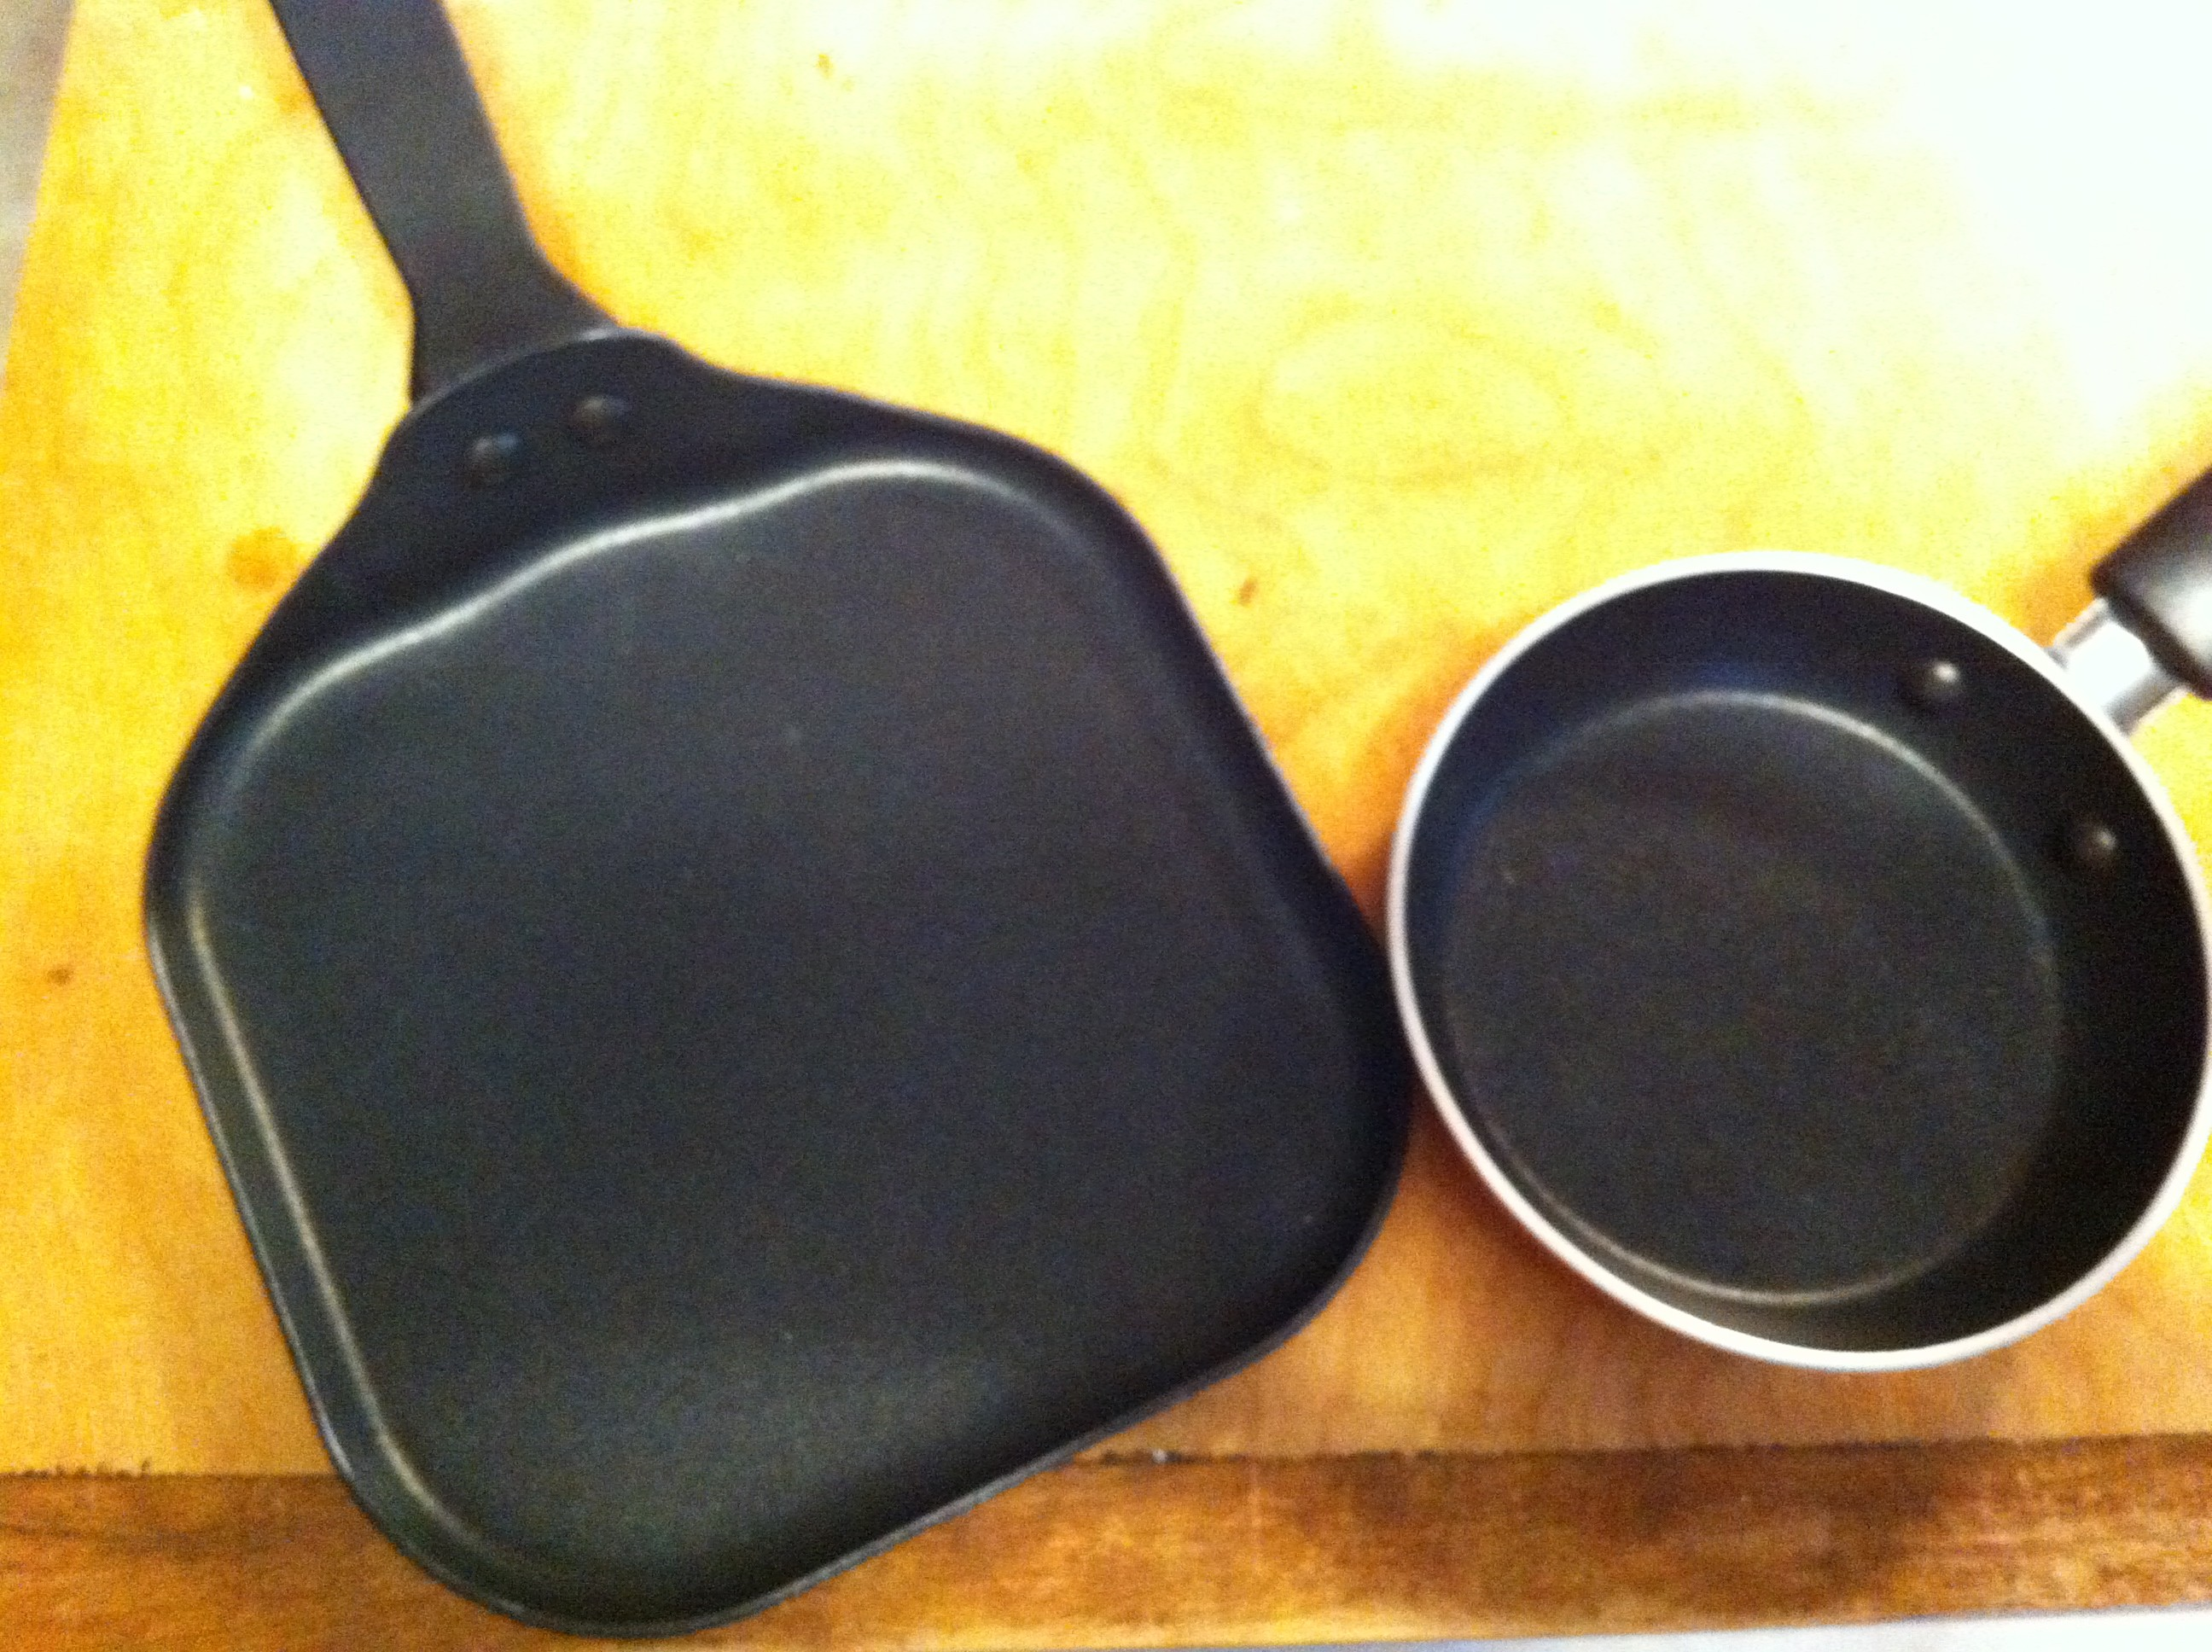 tfal specialty pans